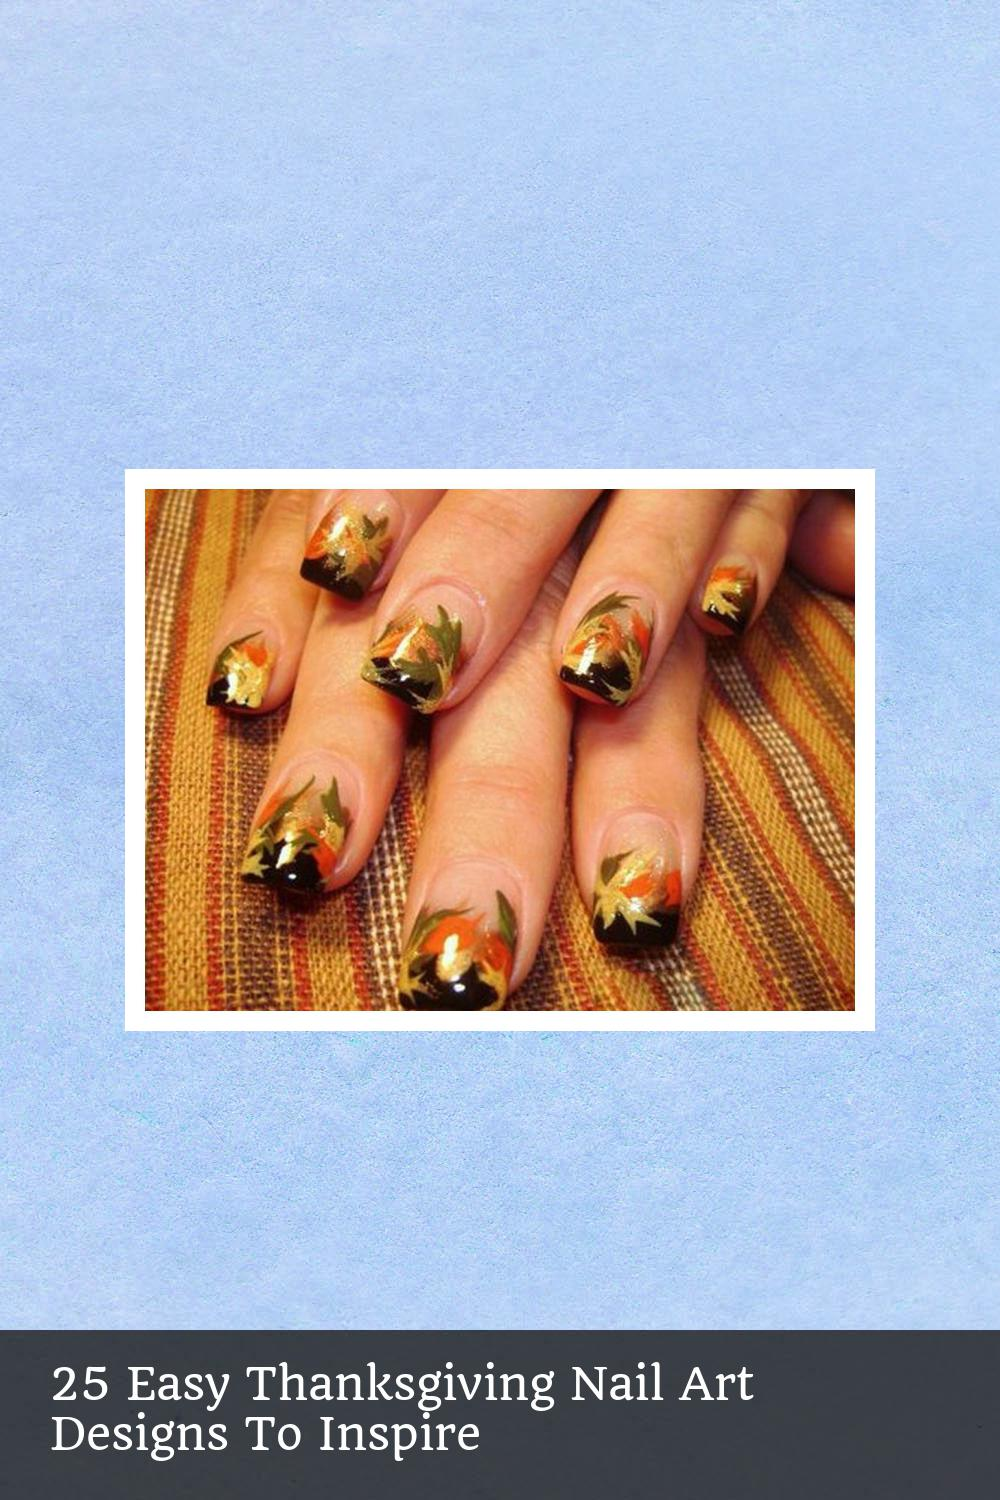 25 Easy Thanksgiving Nail Art Designs To Inspire 8